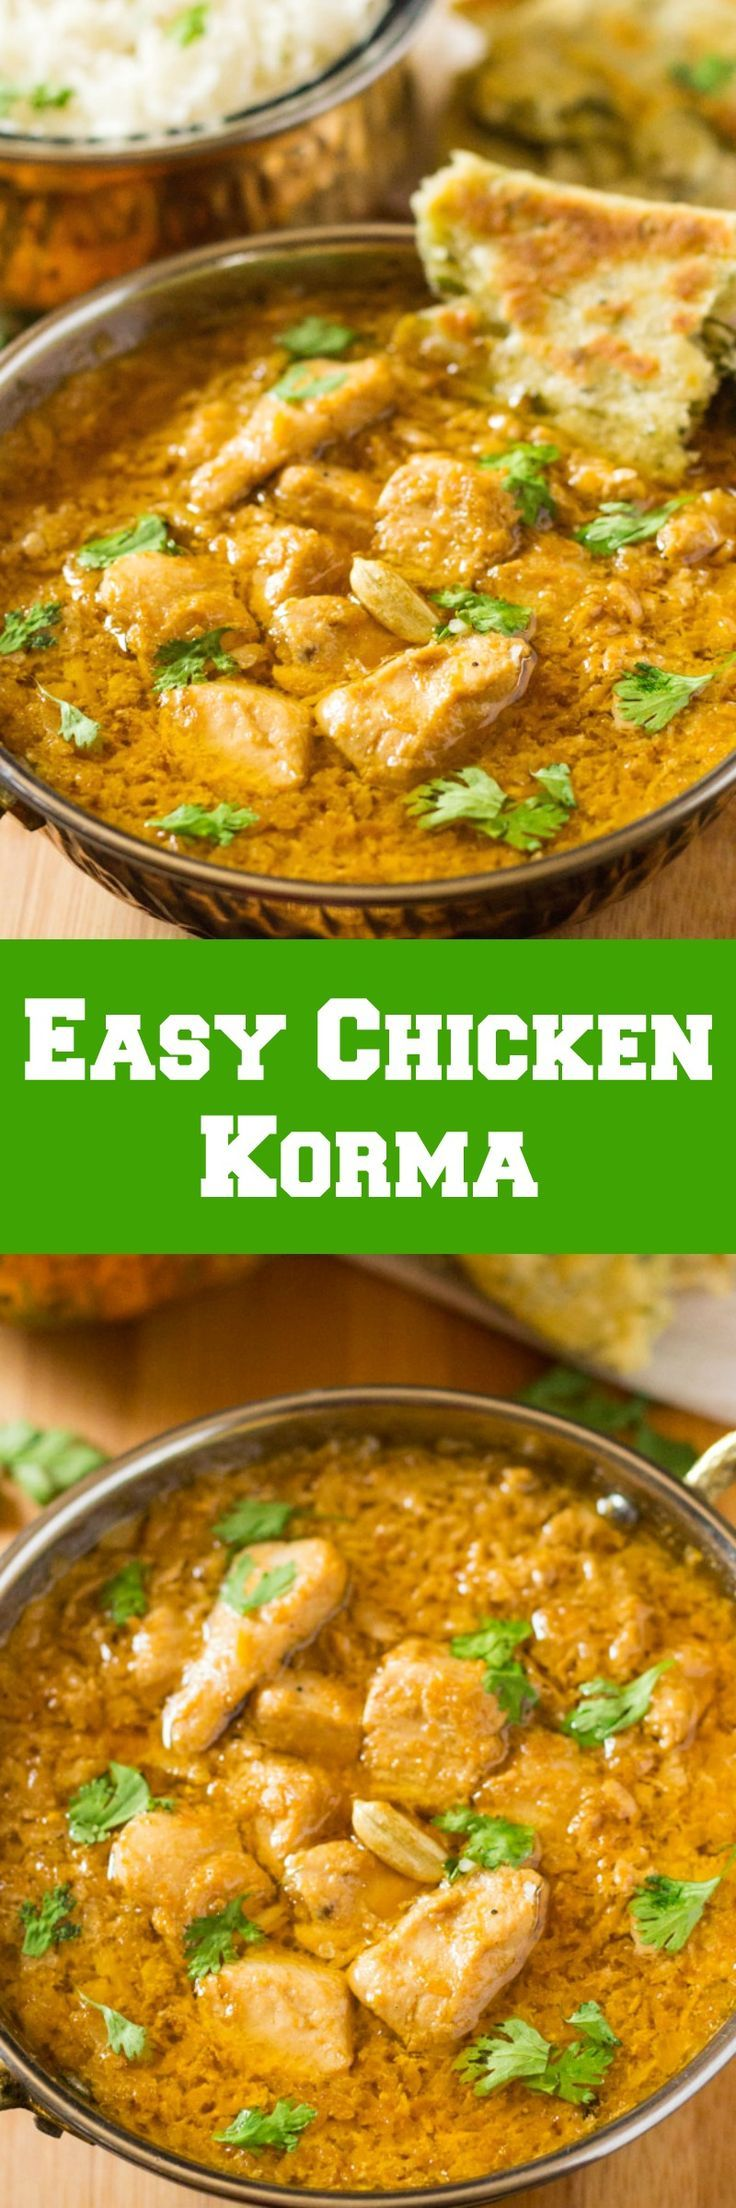 Easy Chicken Korma Curry